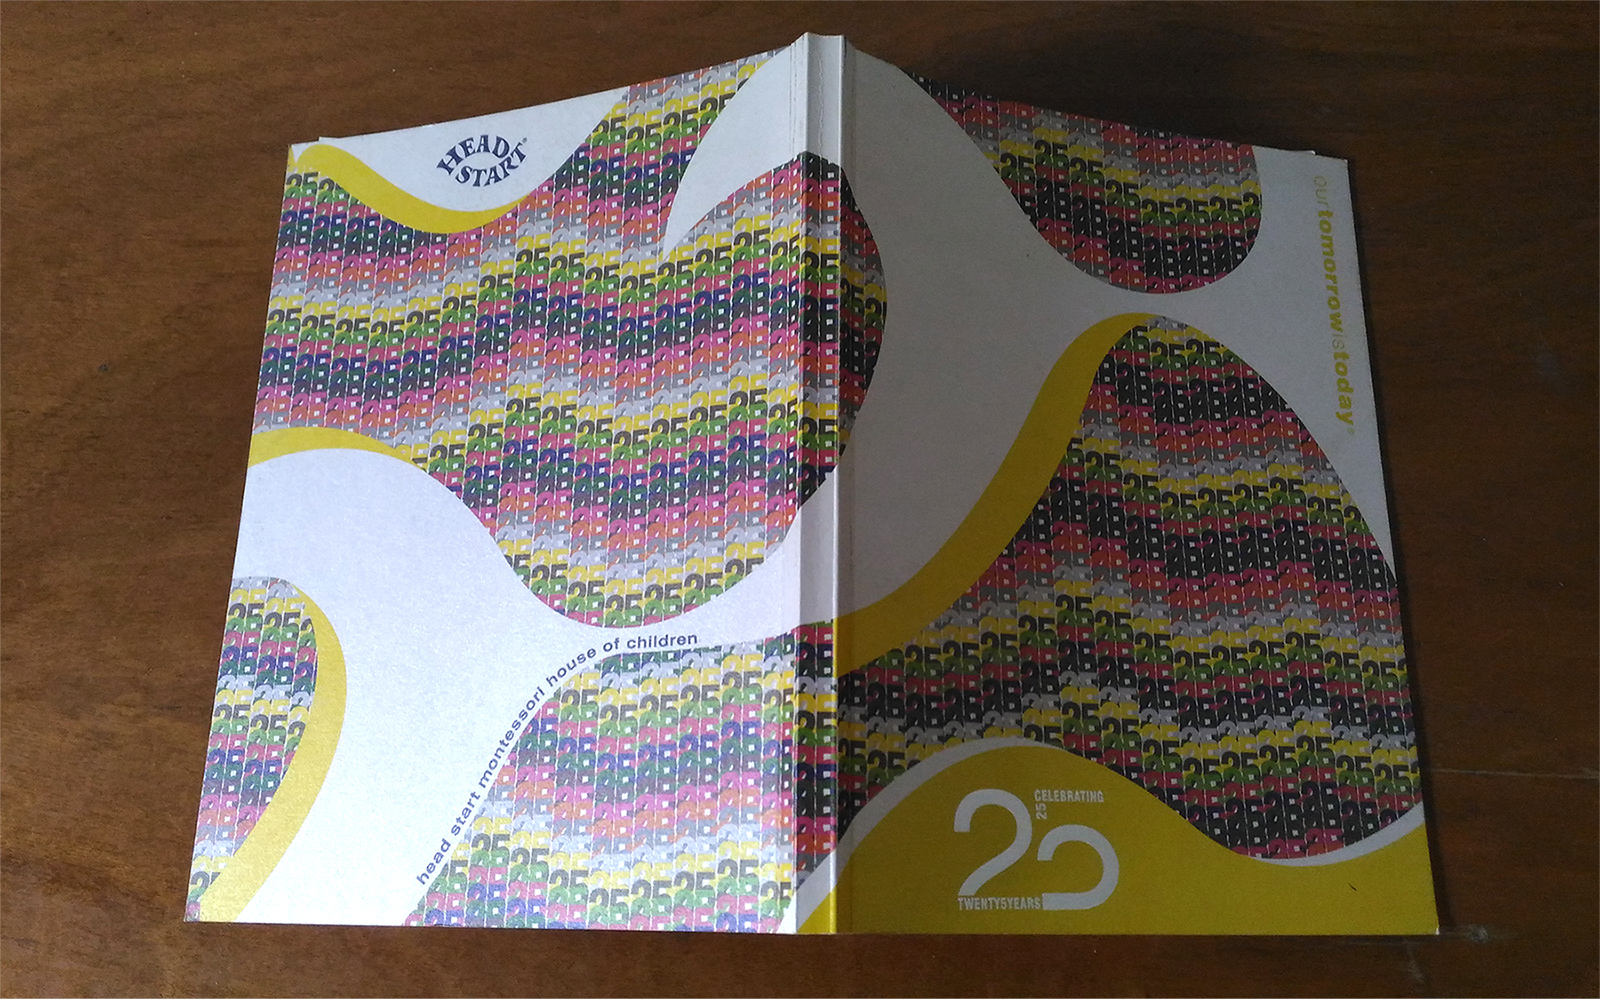 Head Start Montessori House of Children, book celebrating 25 years. Front and back cover spread.